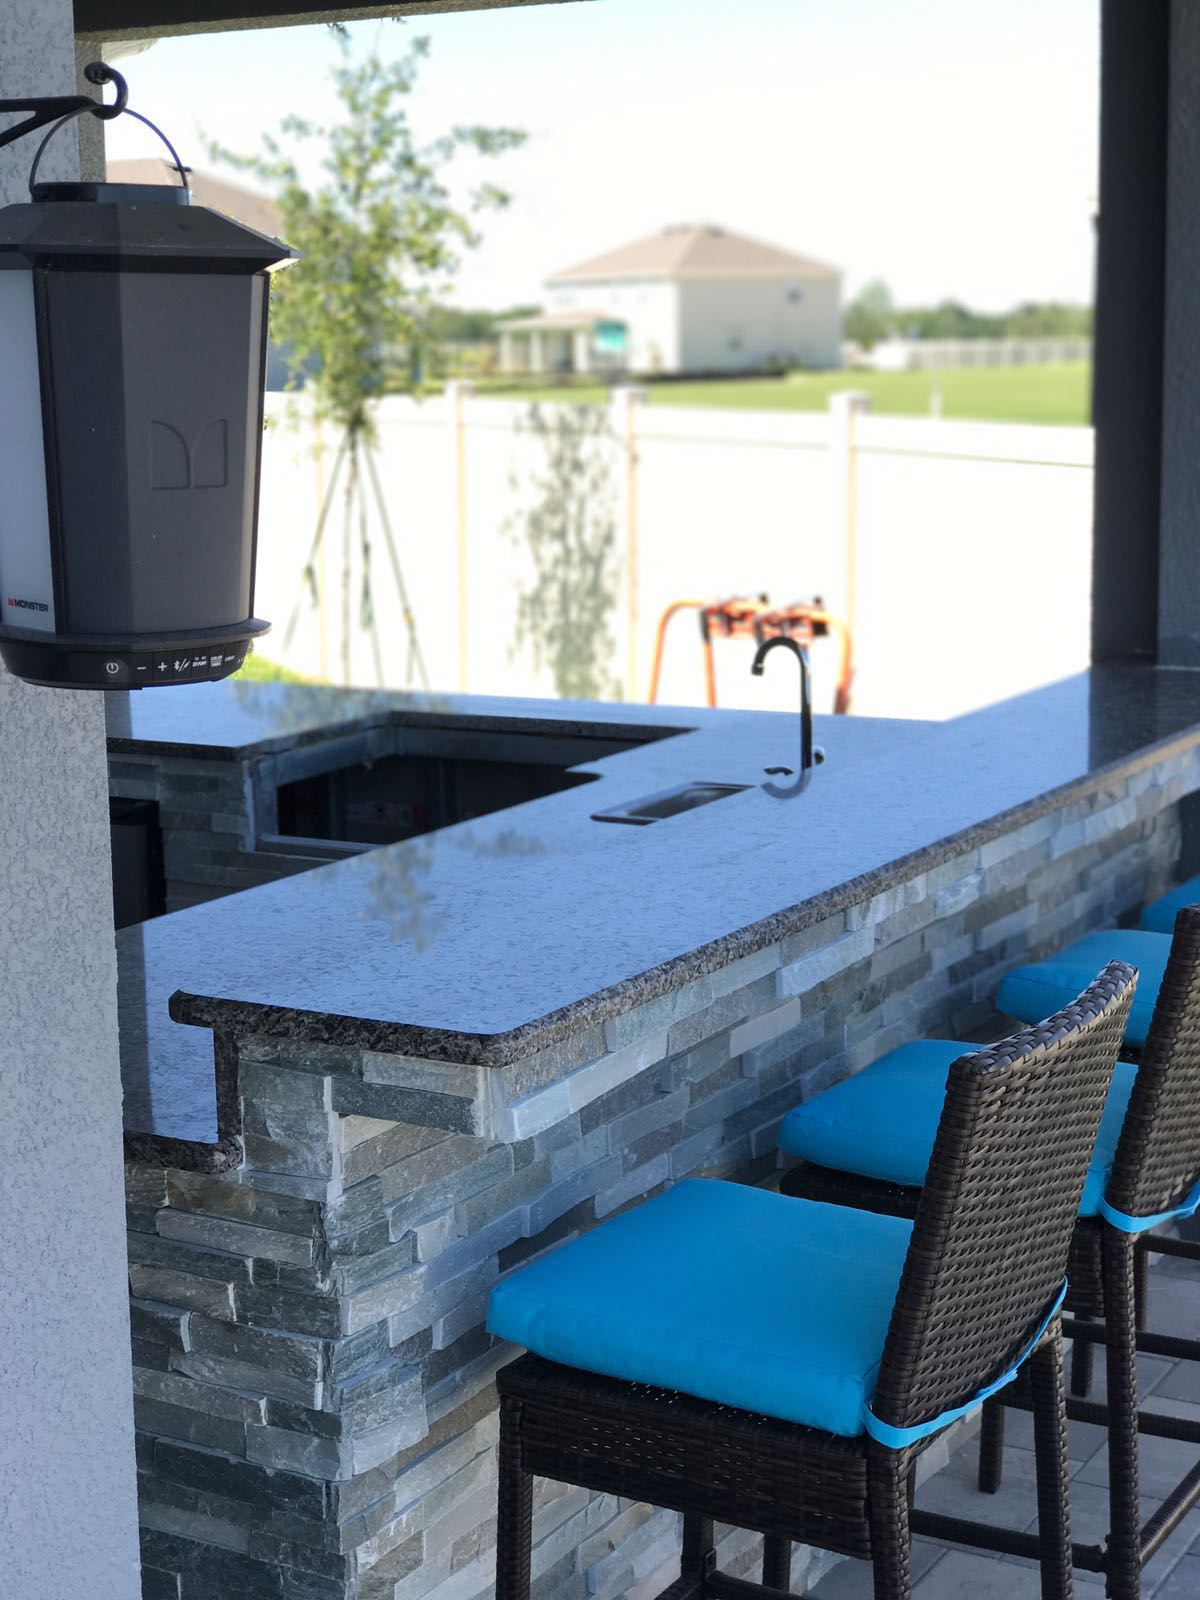 Outdoor Kitchens and Cabinets - Great Prices | Supreme International USA